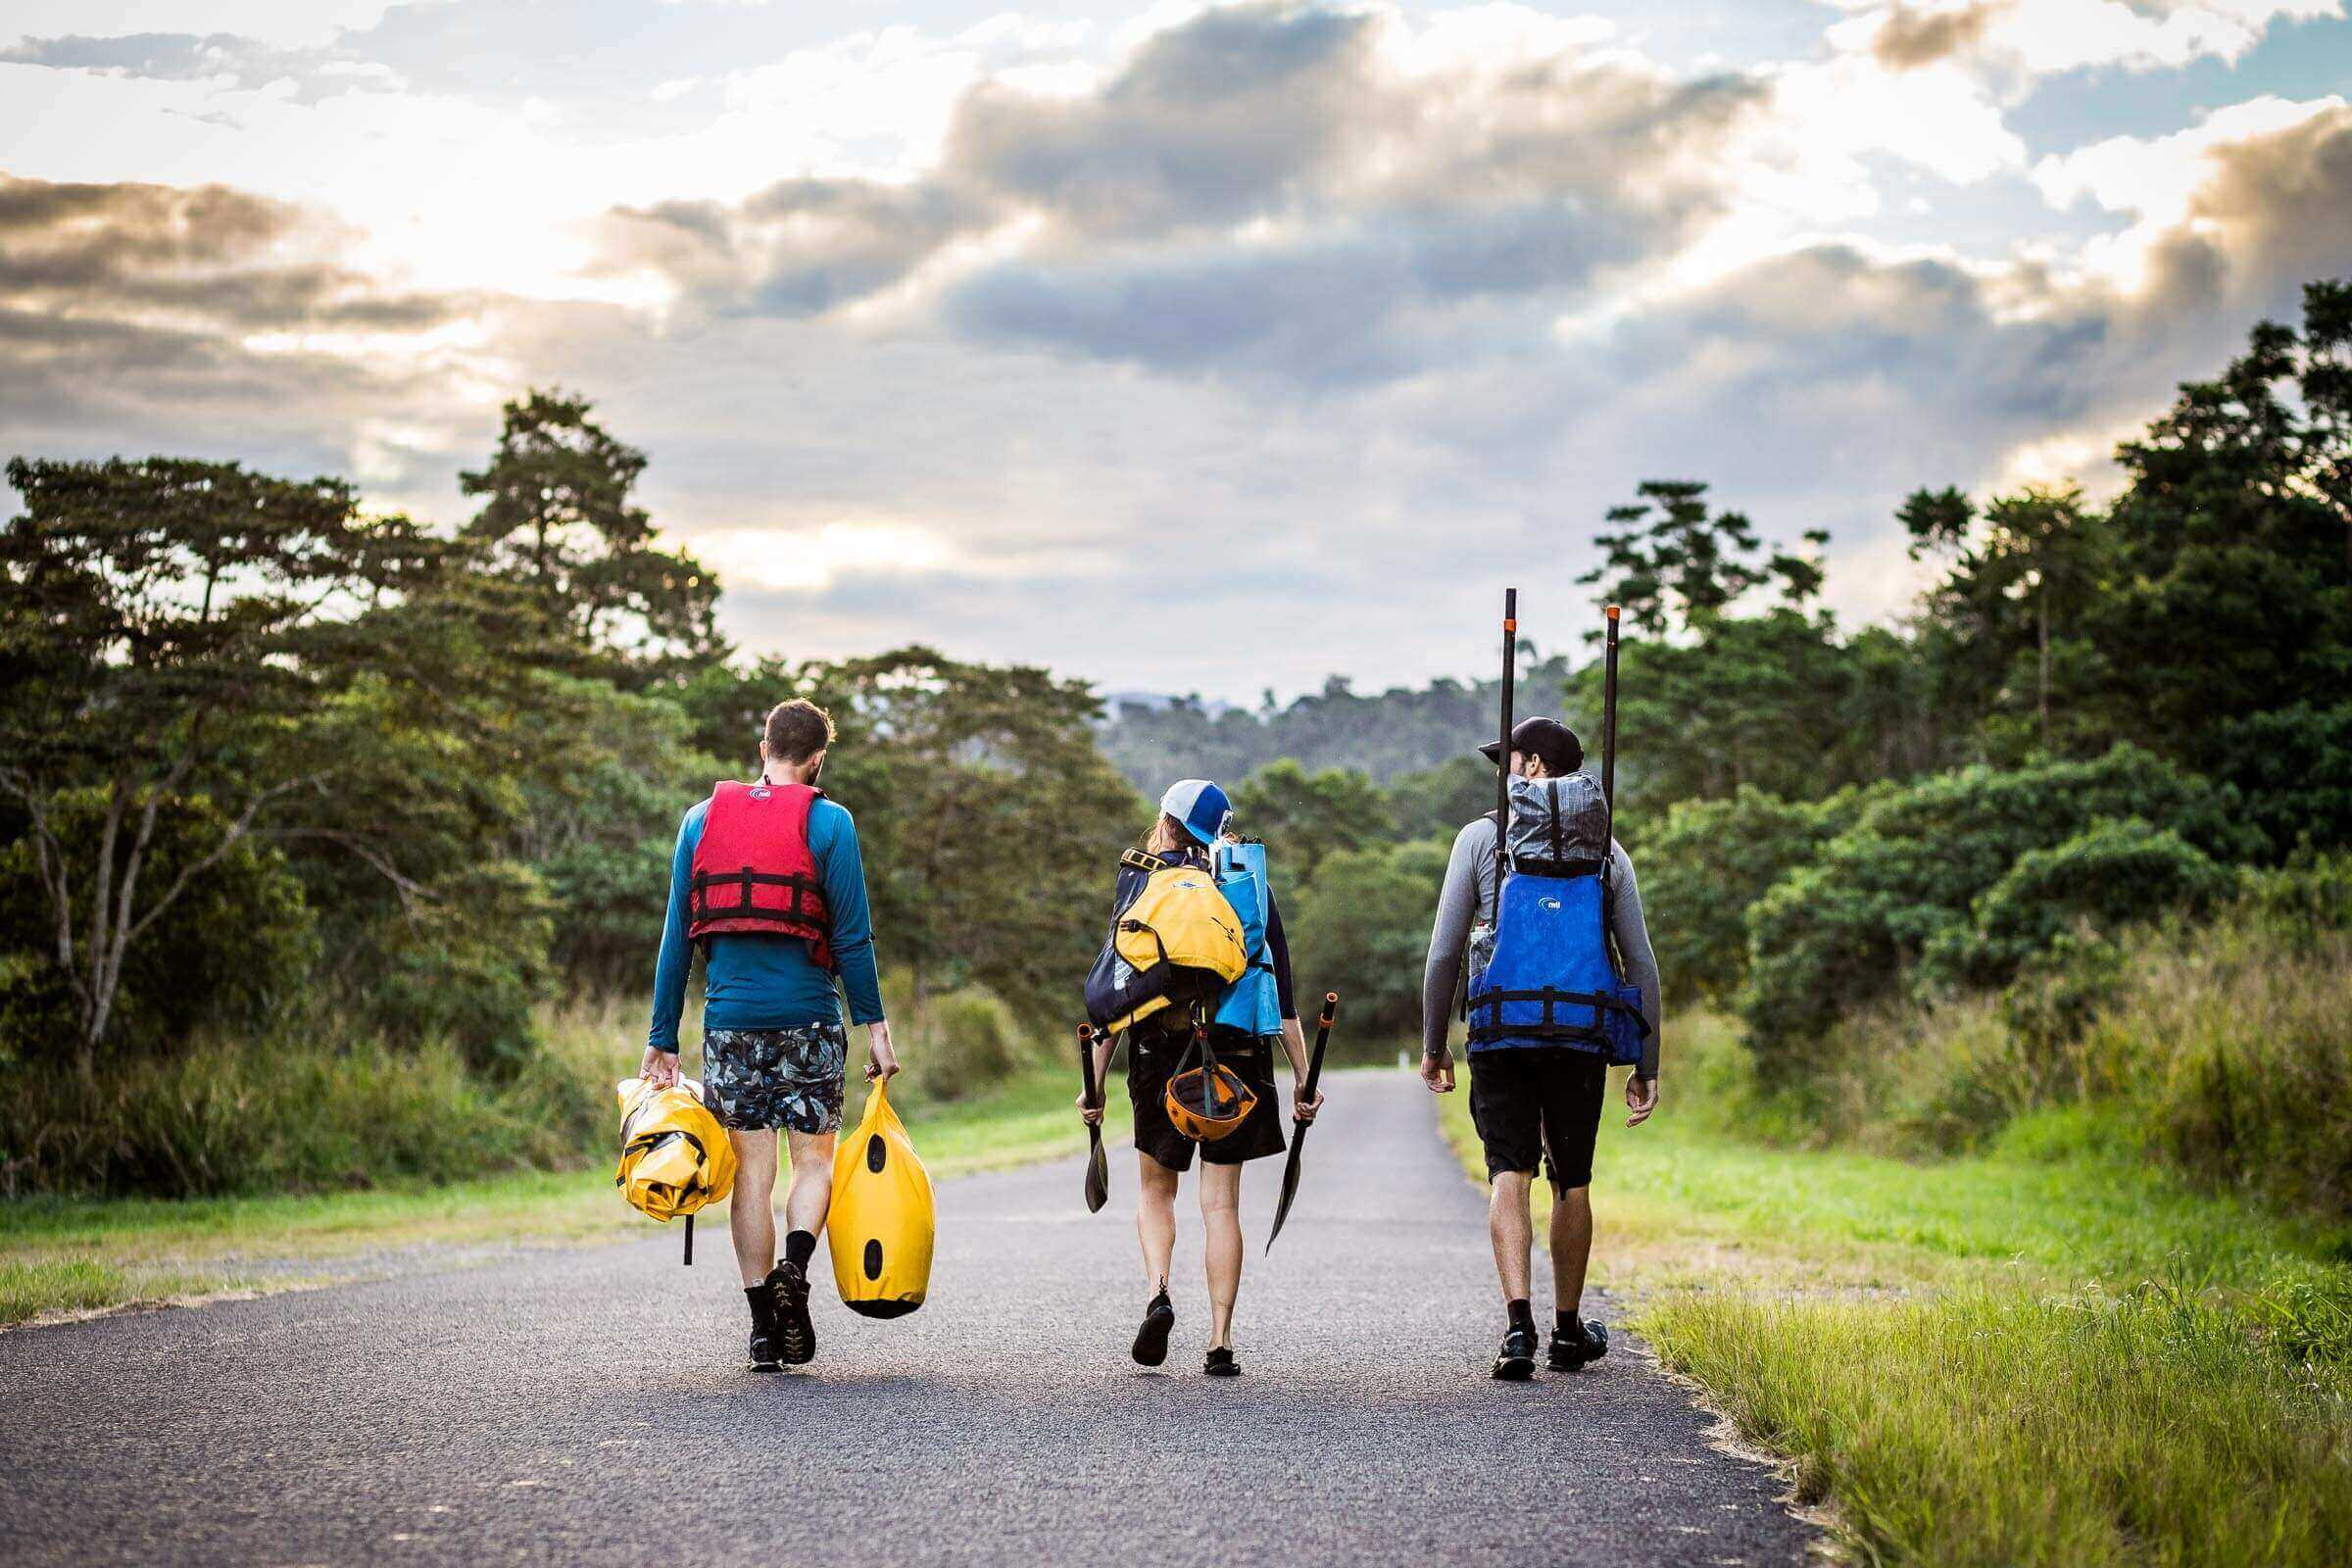 Walking back to camp after a day of whitewater packrafting on the Tully River in north Qld